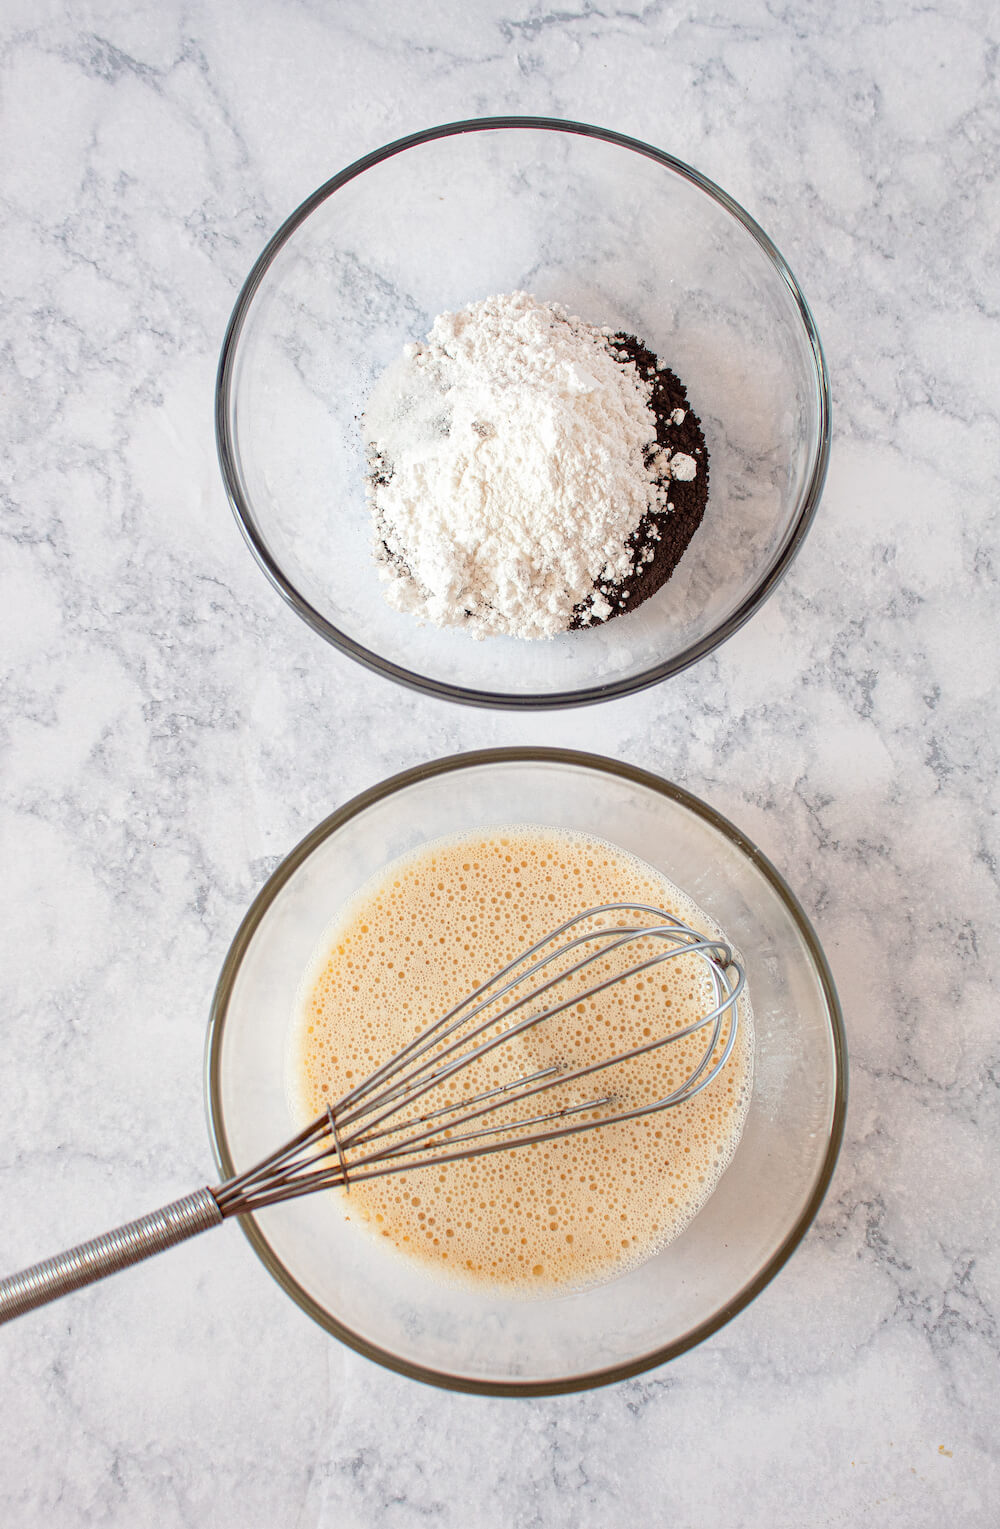 Mix the wet and dry ingredients separately for this recipe.